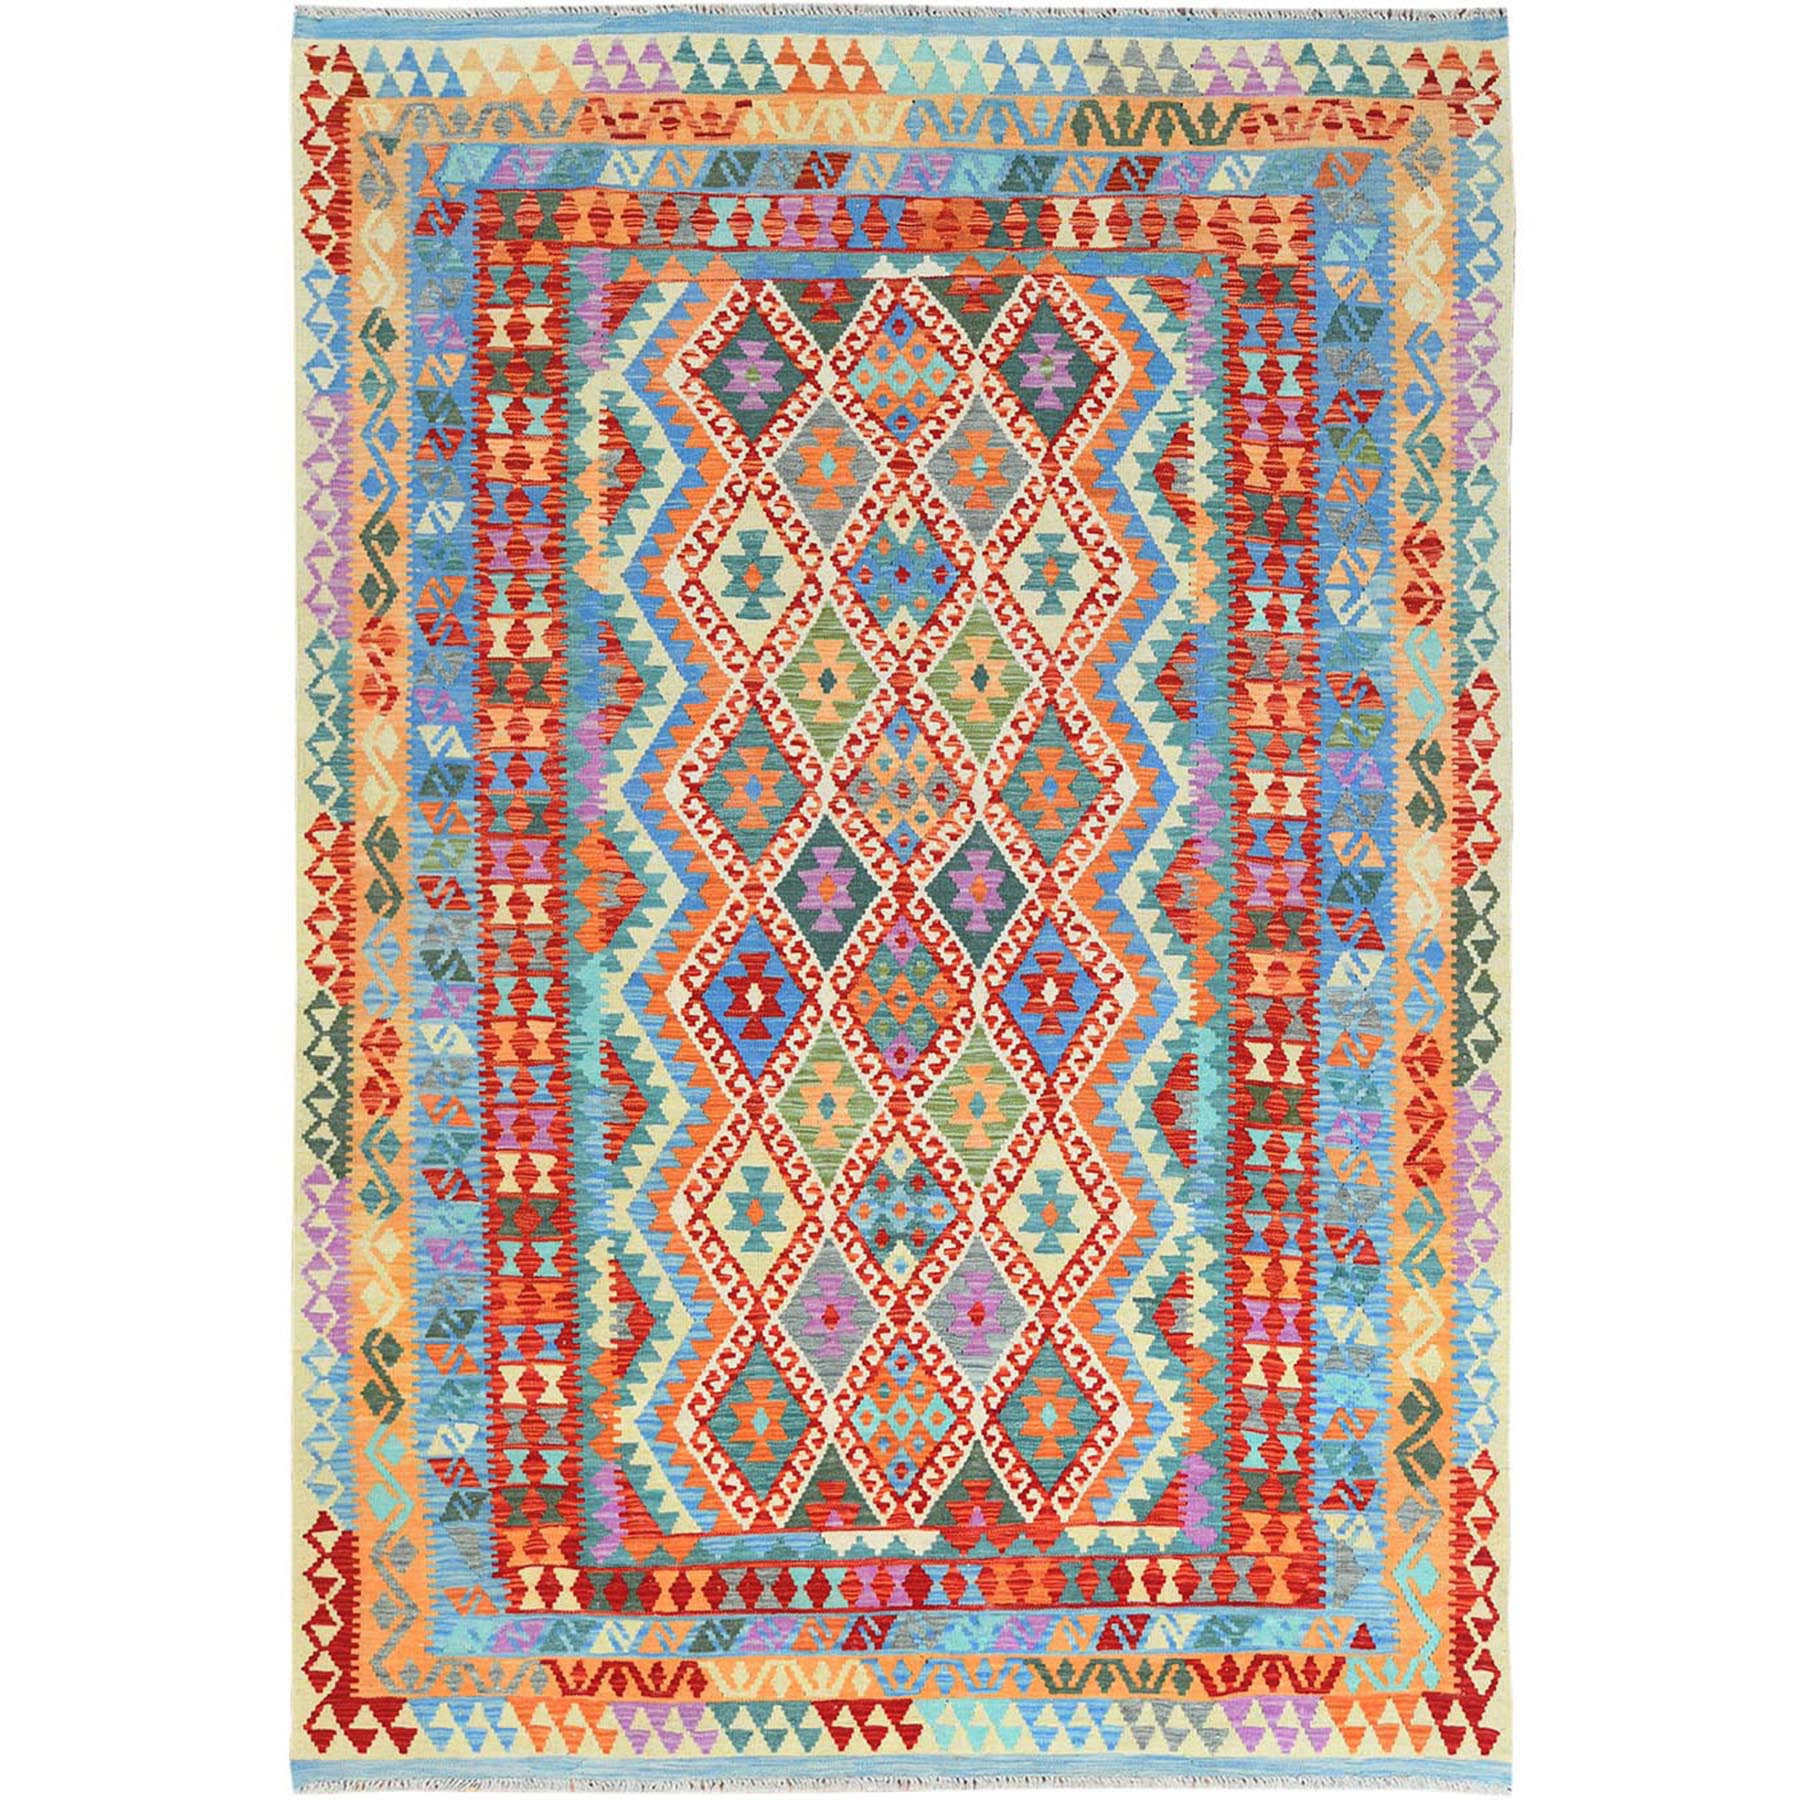 "6'7""x9'6"" Colorful Afghan Kilim With Tribal Design Reversible Glimmery Wool Hand Woven Ethnic Oriental Rug"